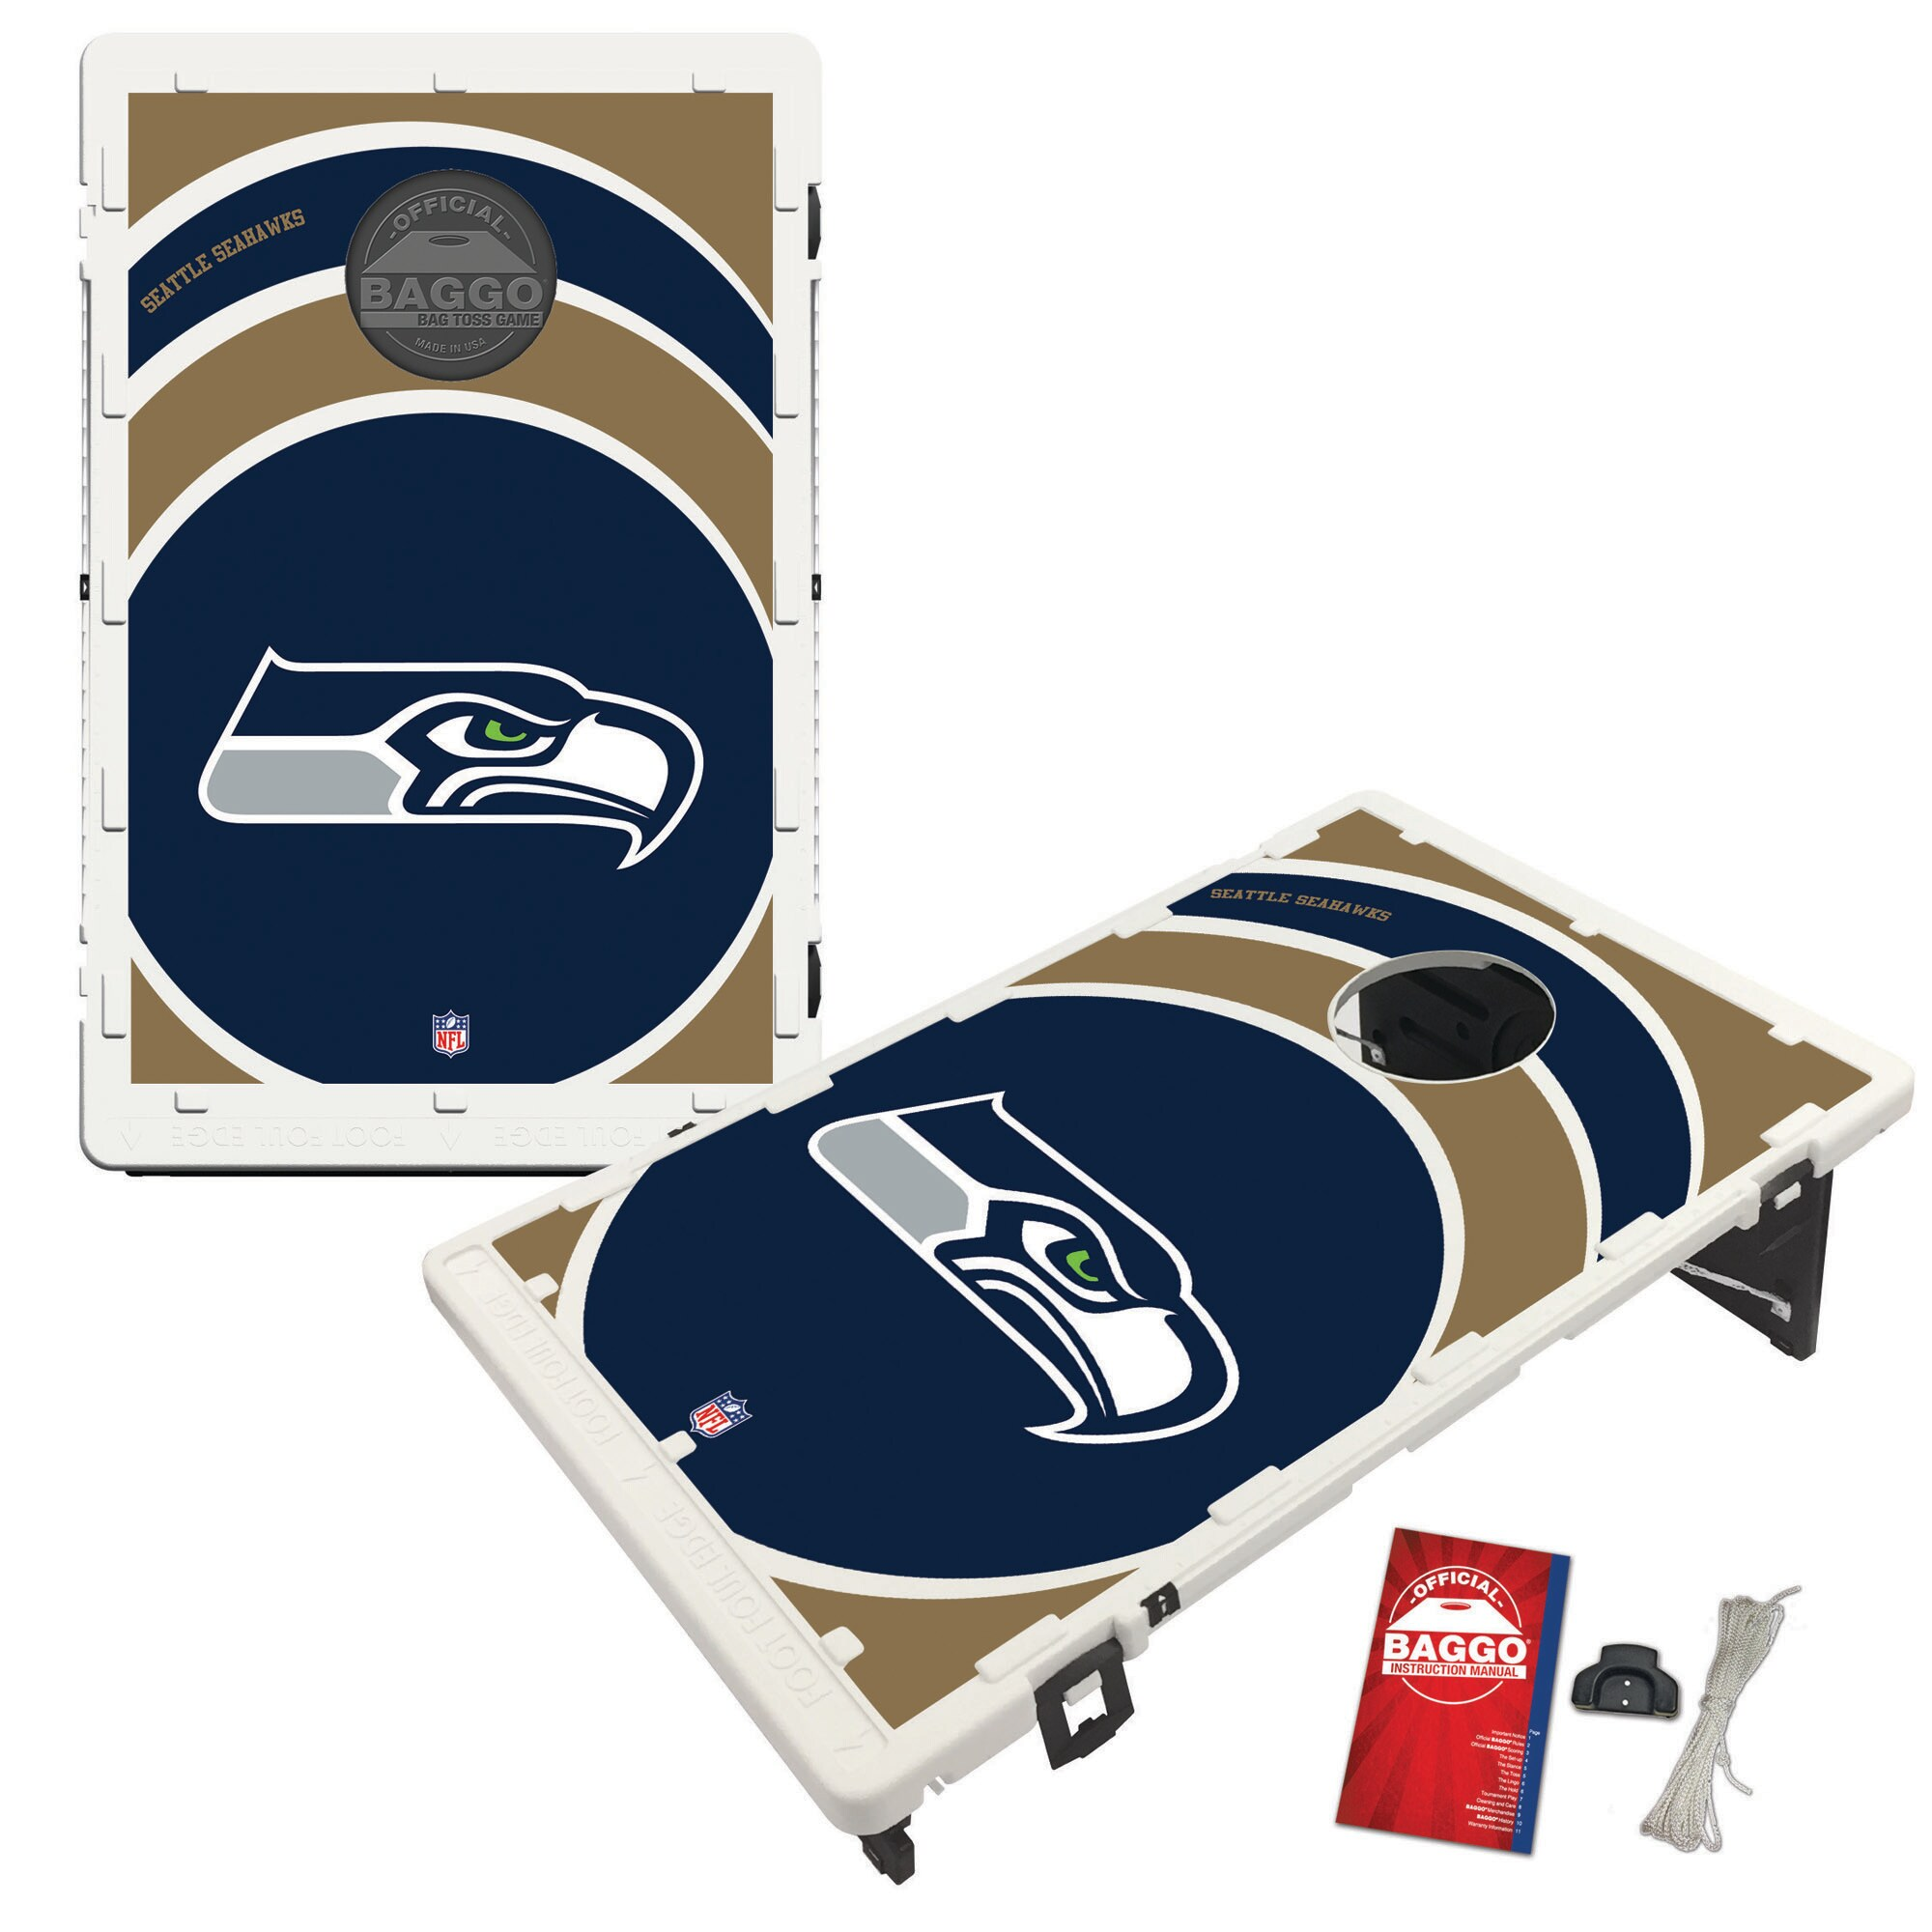 Seattle Seahawks 2' x 3' BAGGO Vortex Cornhole Board Tailgate Toss Set